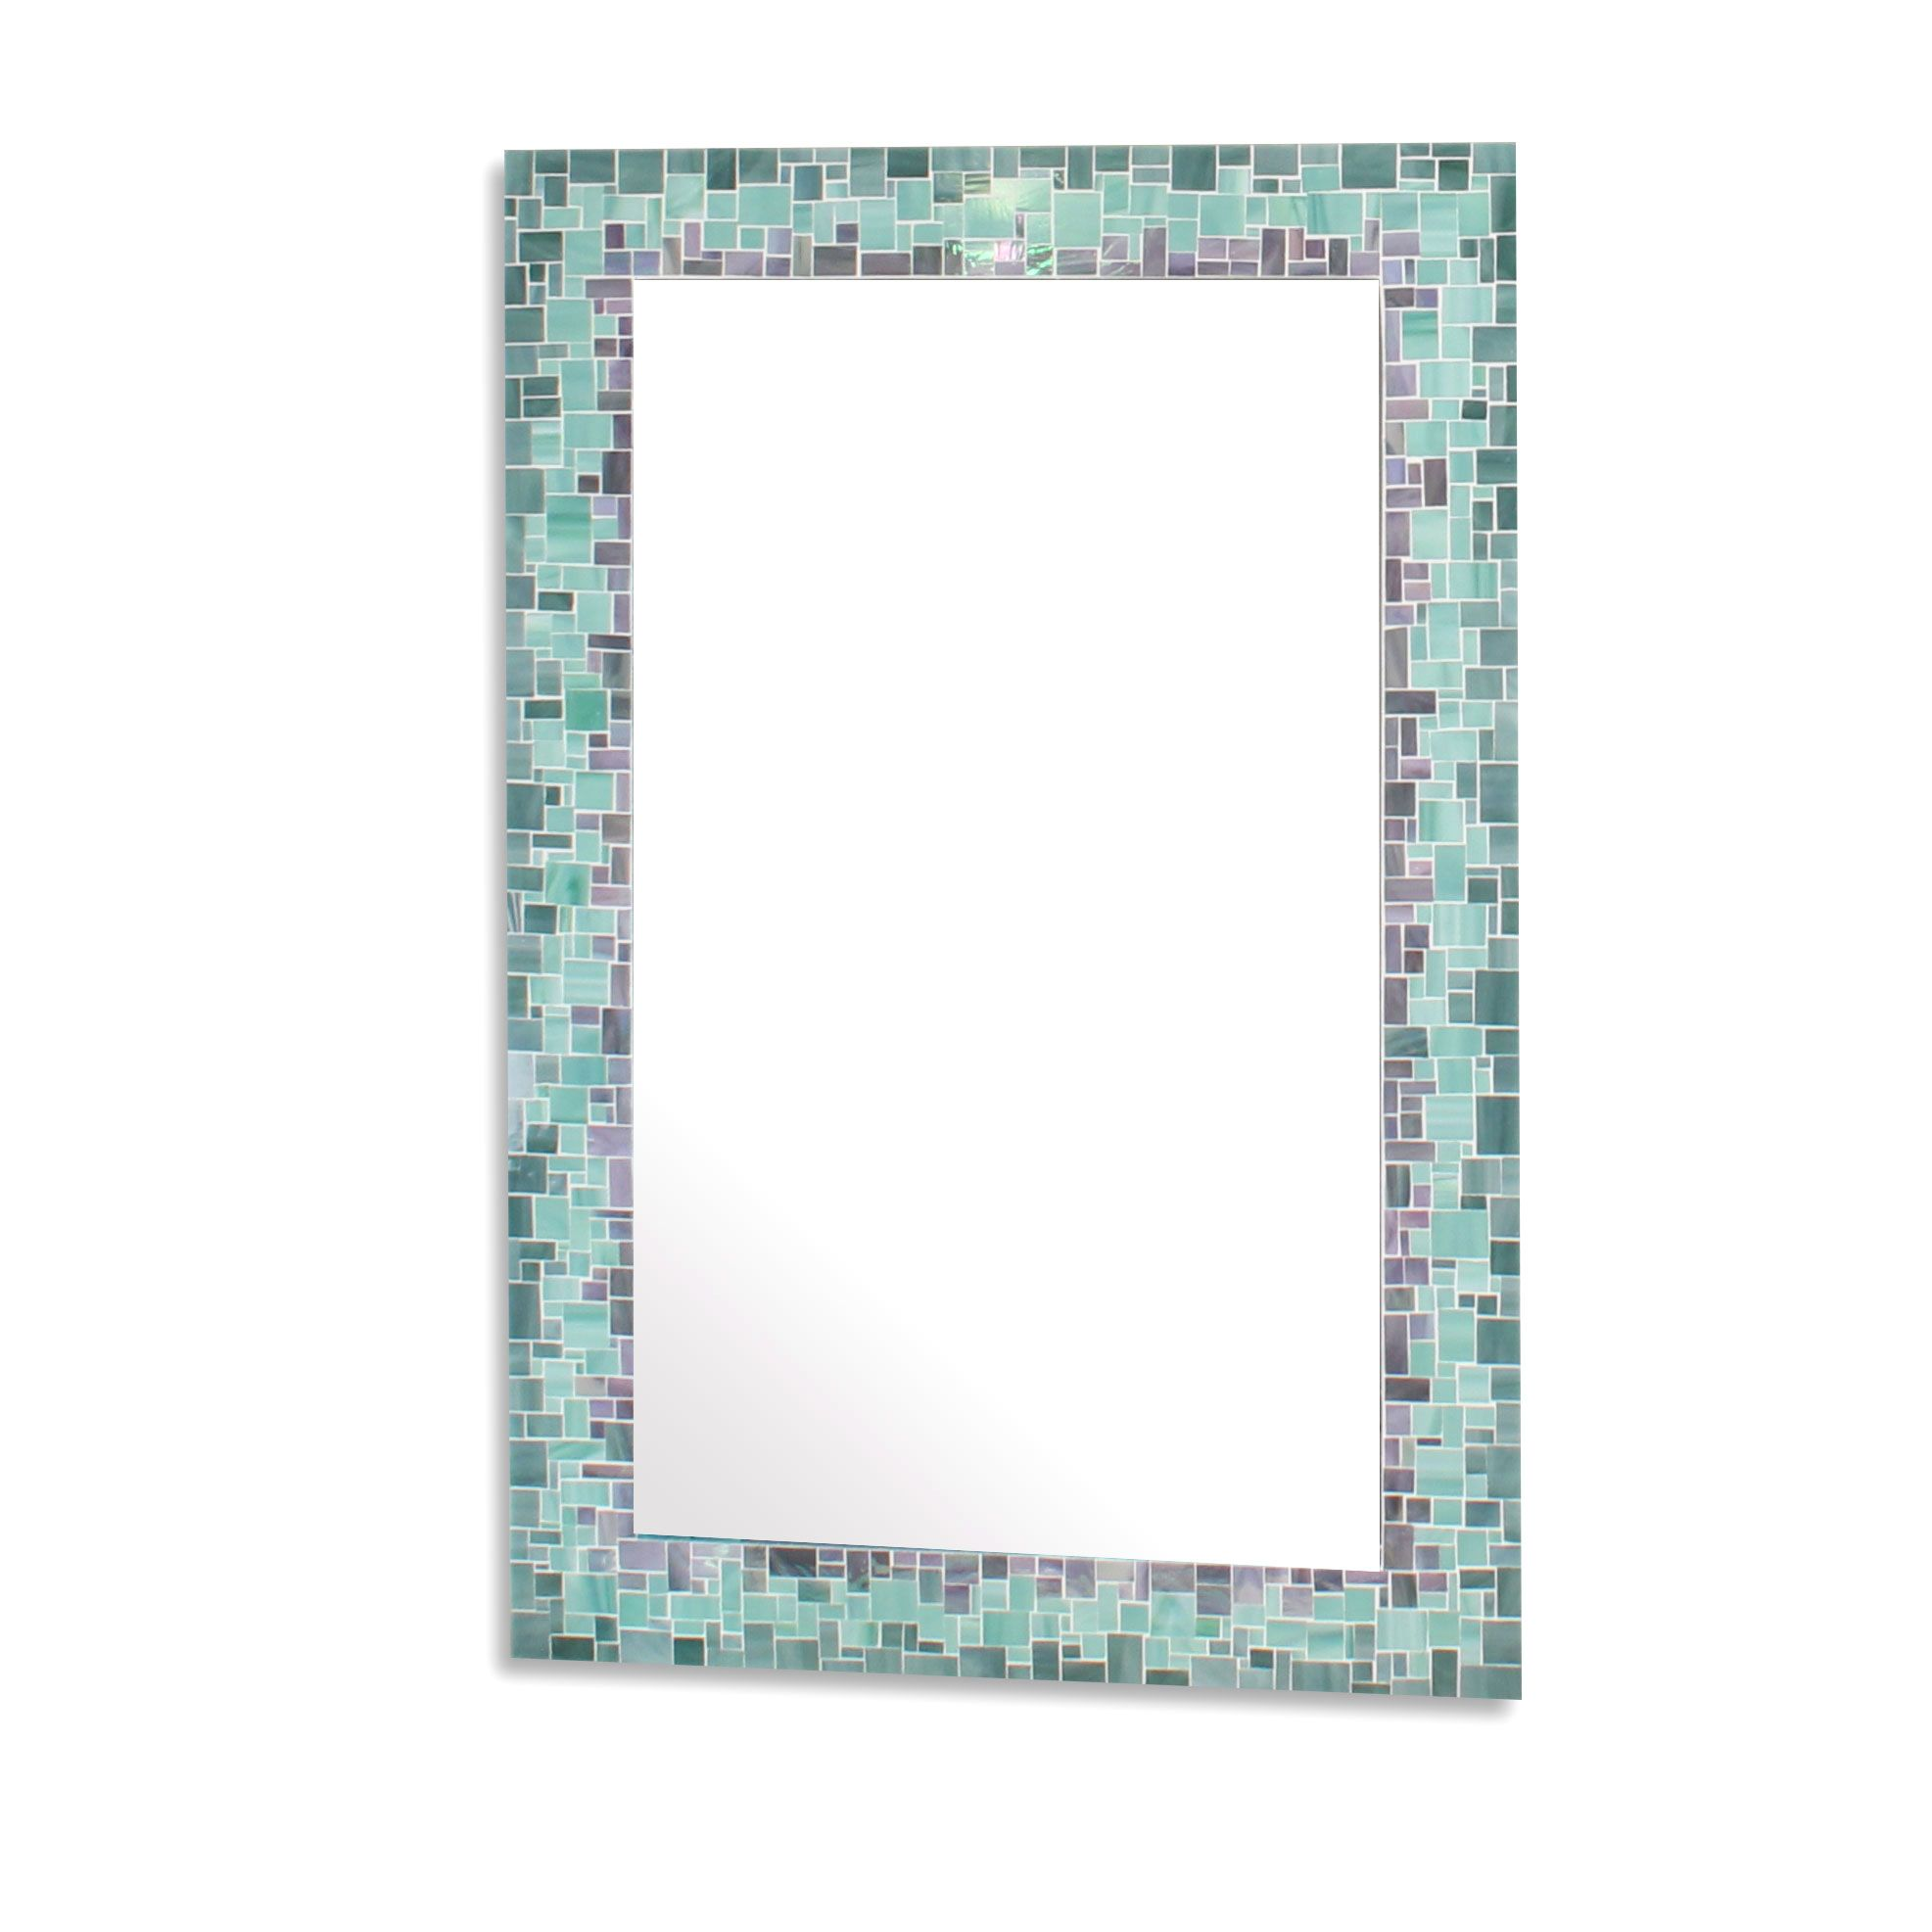 Custom Made Sunburst Decorative Mosaic Wall Mirror In Iridescent Gray Sea Green And Blue